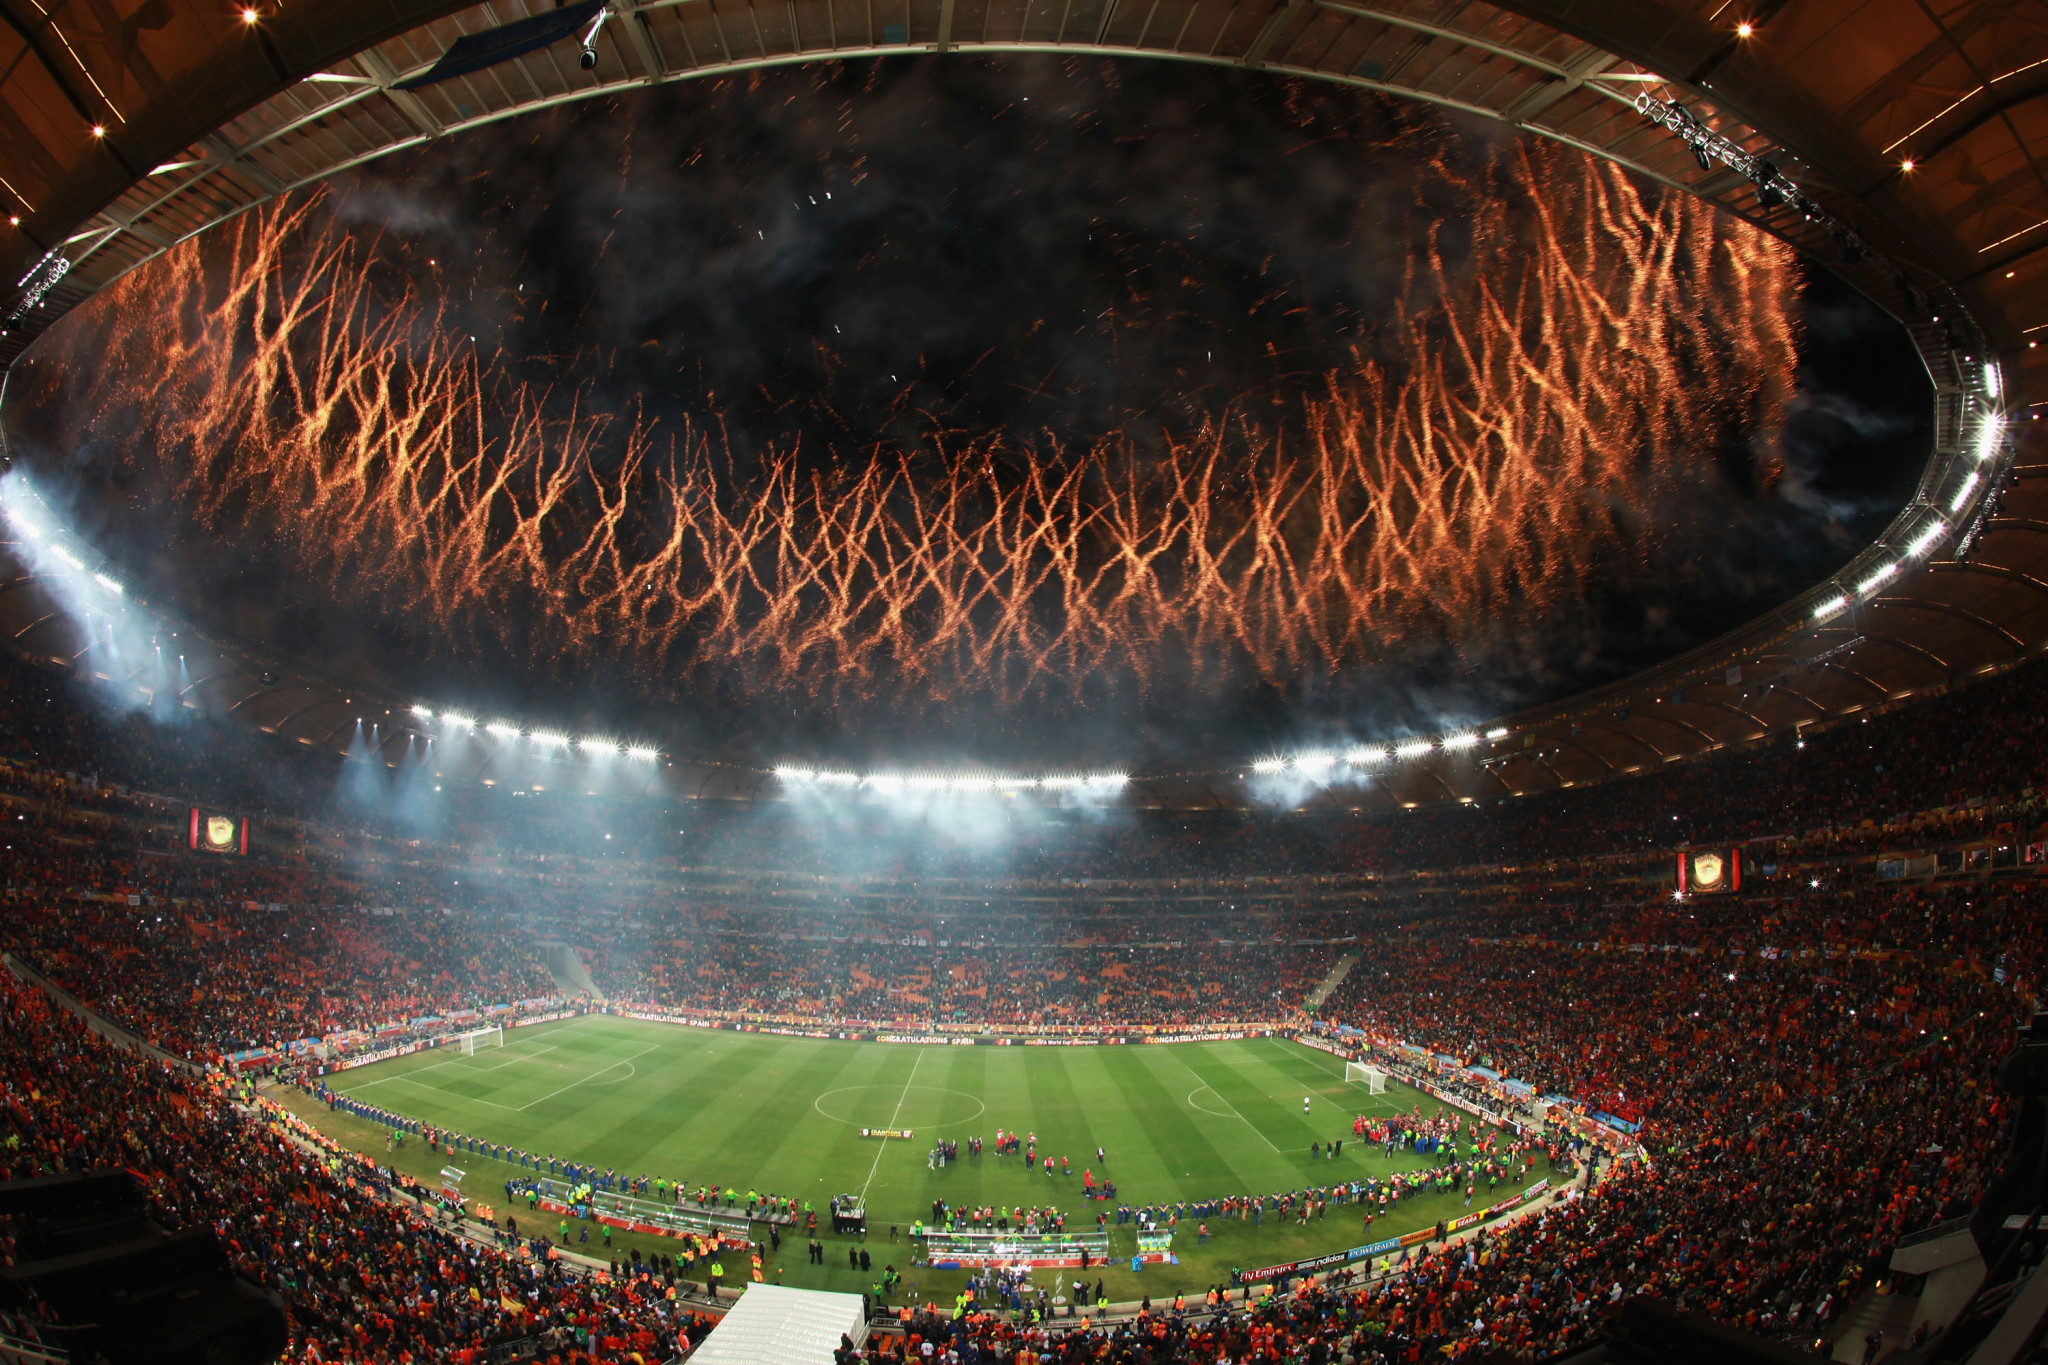 Thulas Nxesi has compared the bidding process to the FIFA World Cup of 2010, held in South Africa ©Getty Images